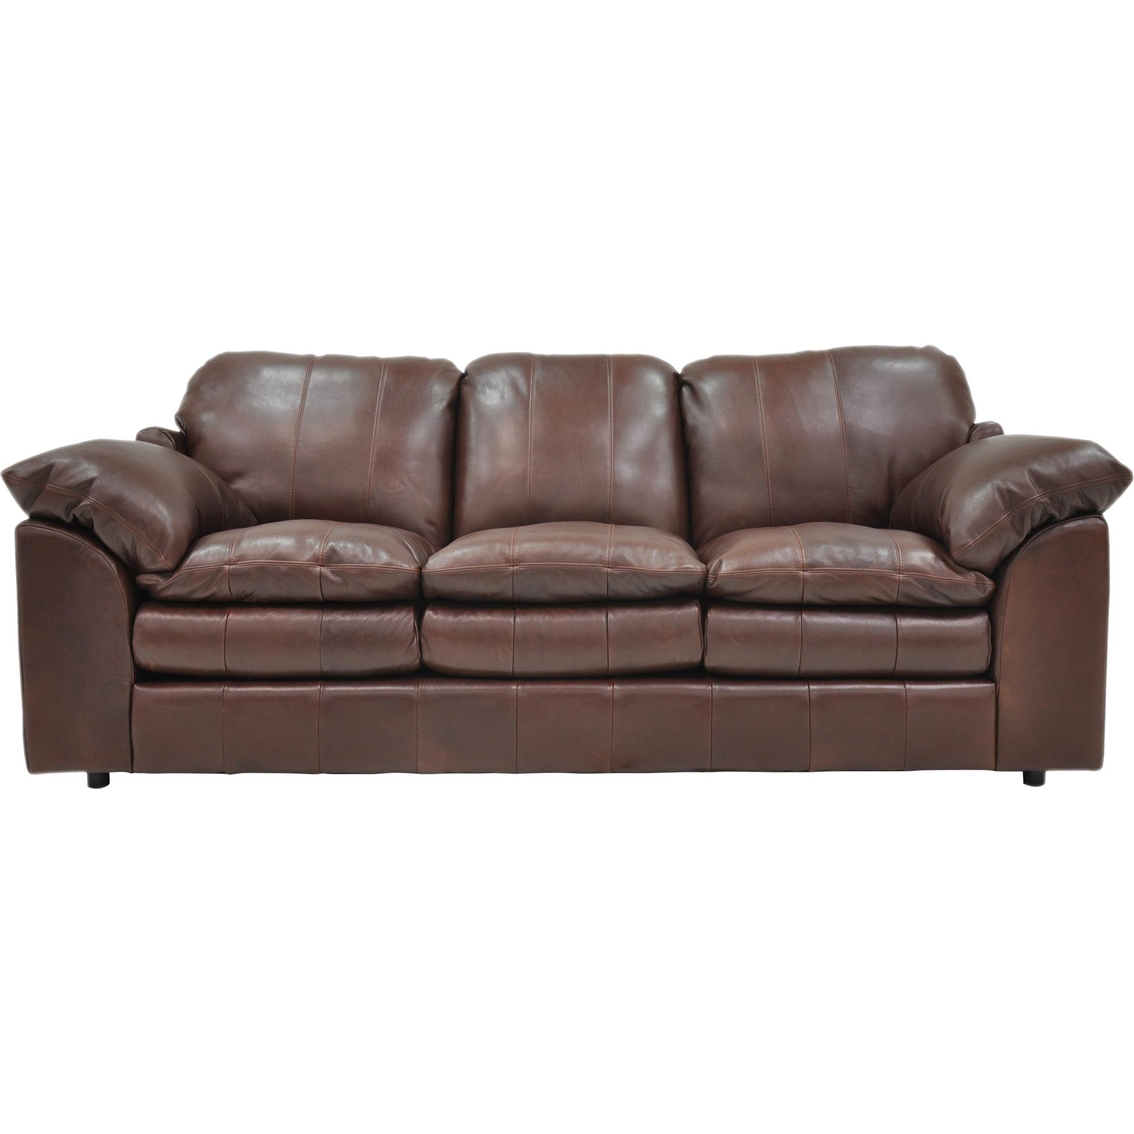 Delicieux Omnia Italian Ventura Leather Sofa